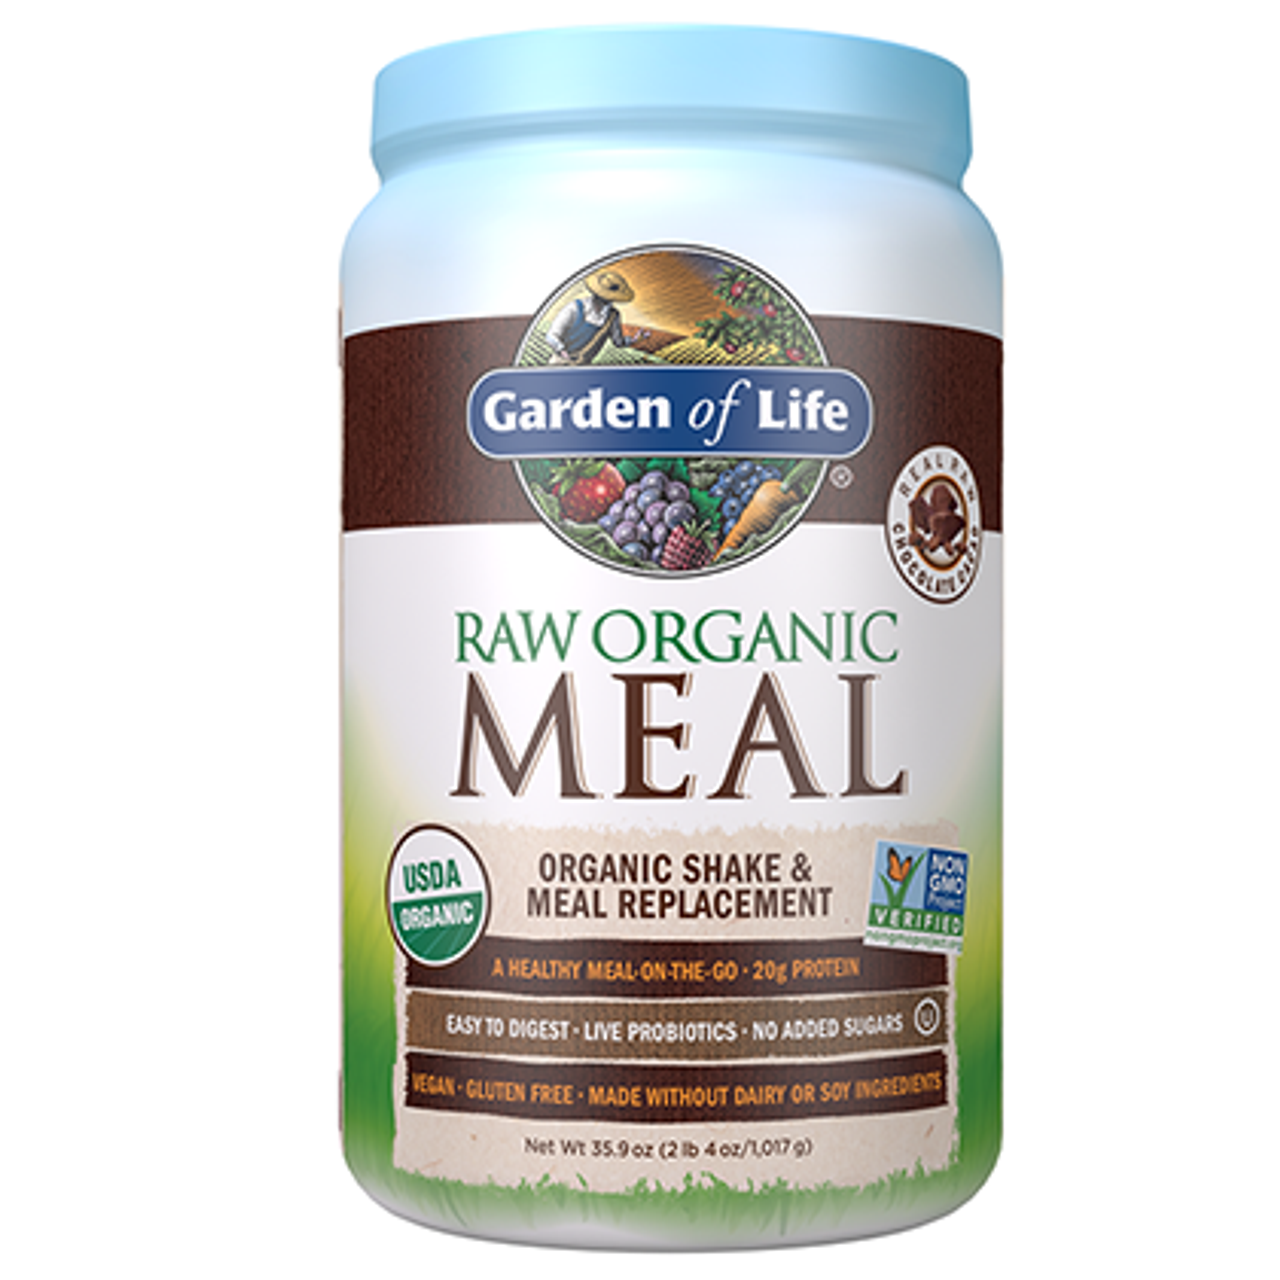 Raw Meal Replacement